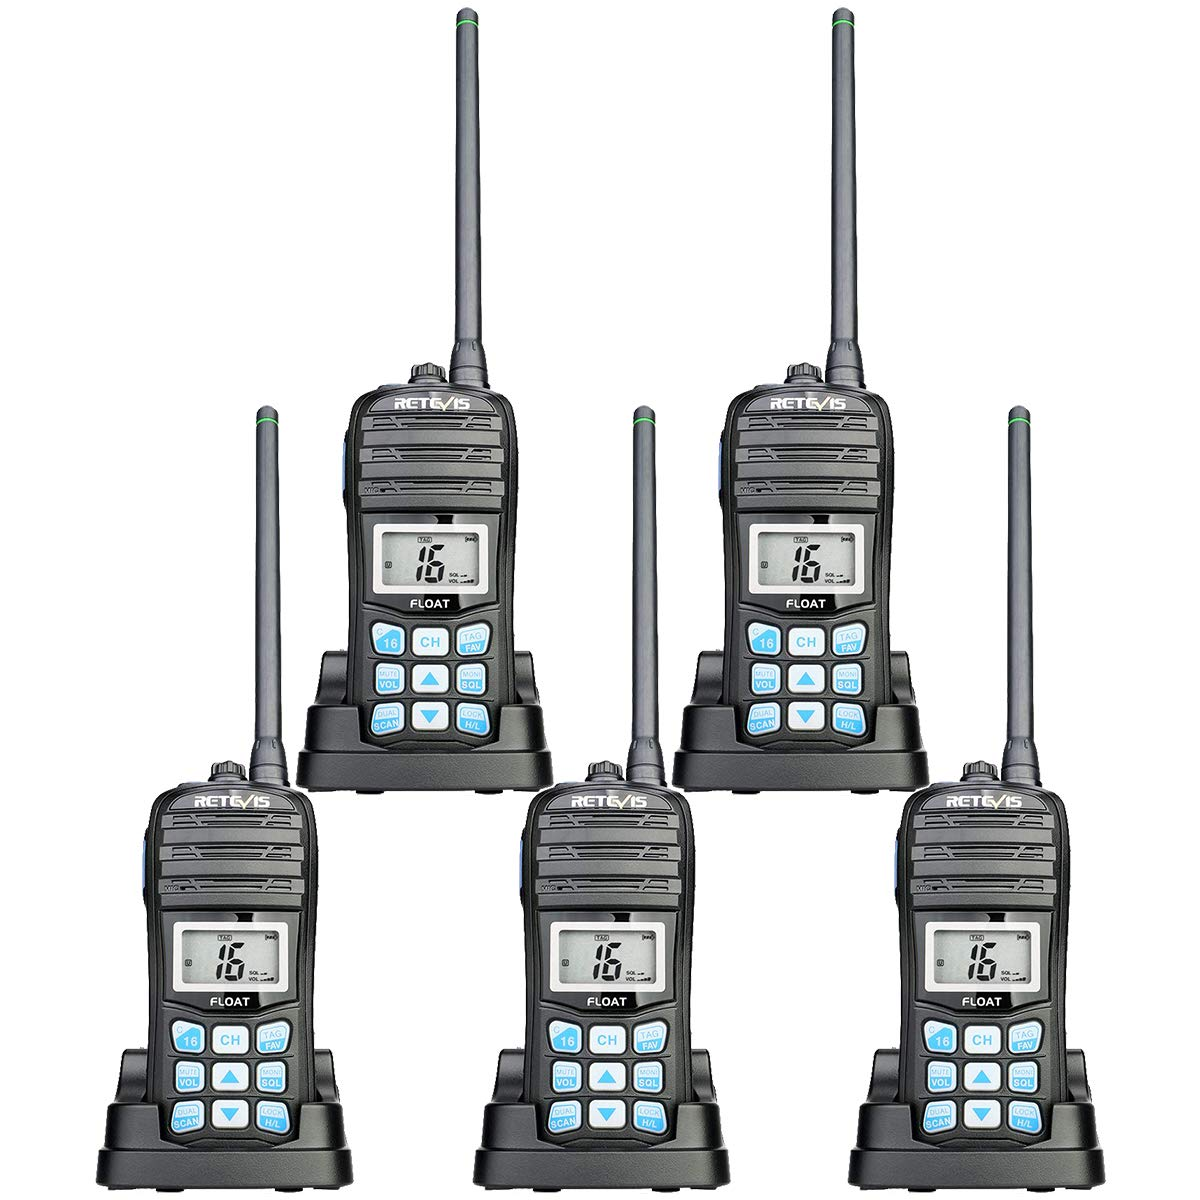 Retevis RT55 Floating Marine Radio Long Range VHF Waterproof IP67 NOAA 16 CH Vibration Water Draining Floating Handheld Radios with Tri-Watch (5 Pack) by Retevis